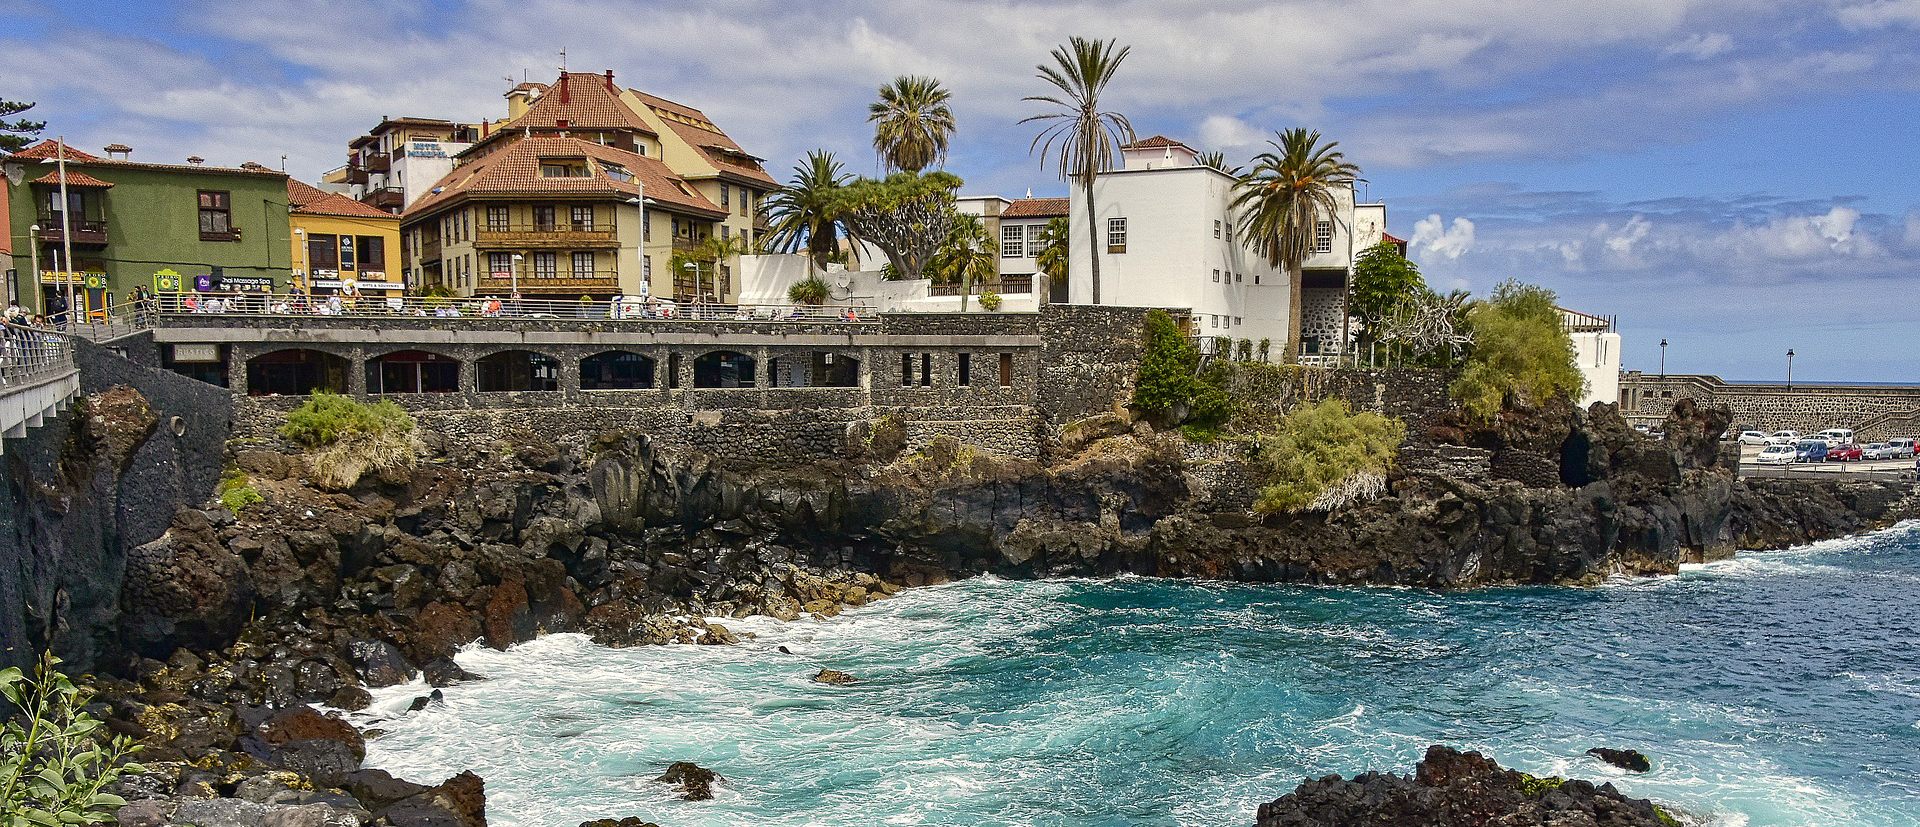 Fly to Lanzarote, Grand Canary and Tenerife